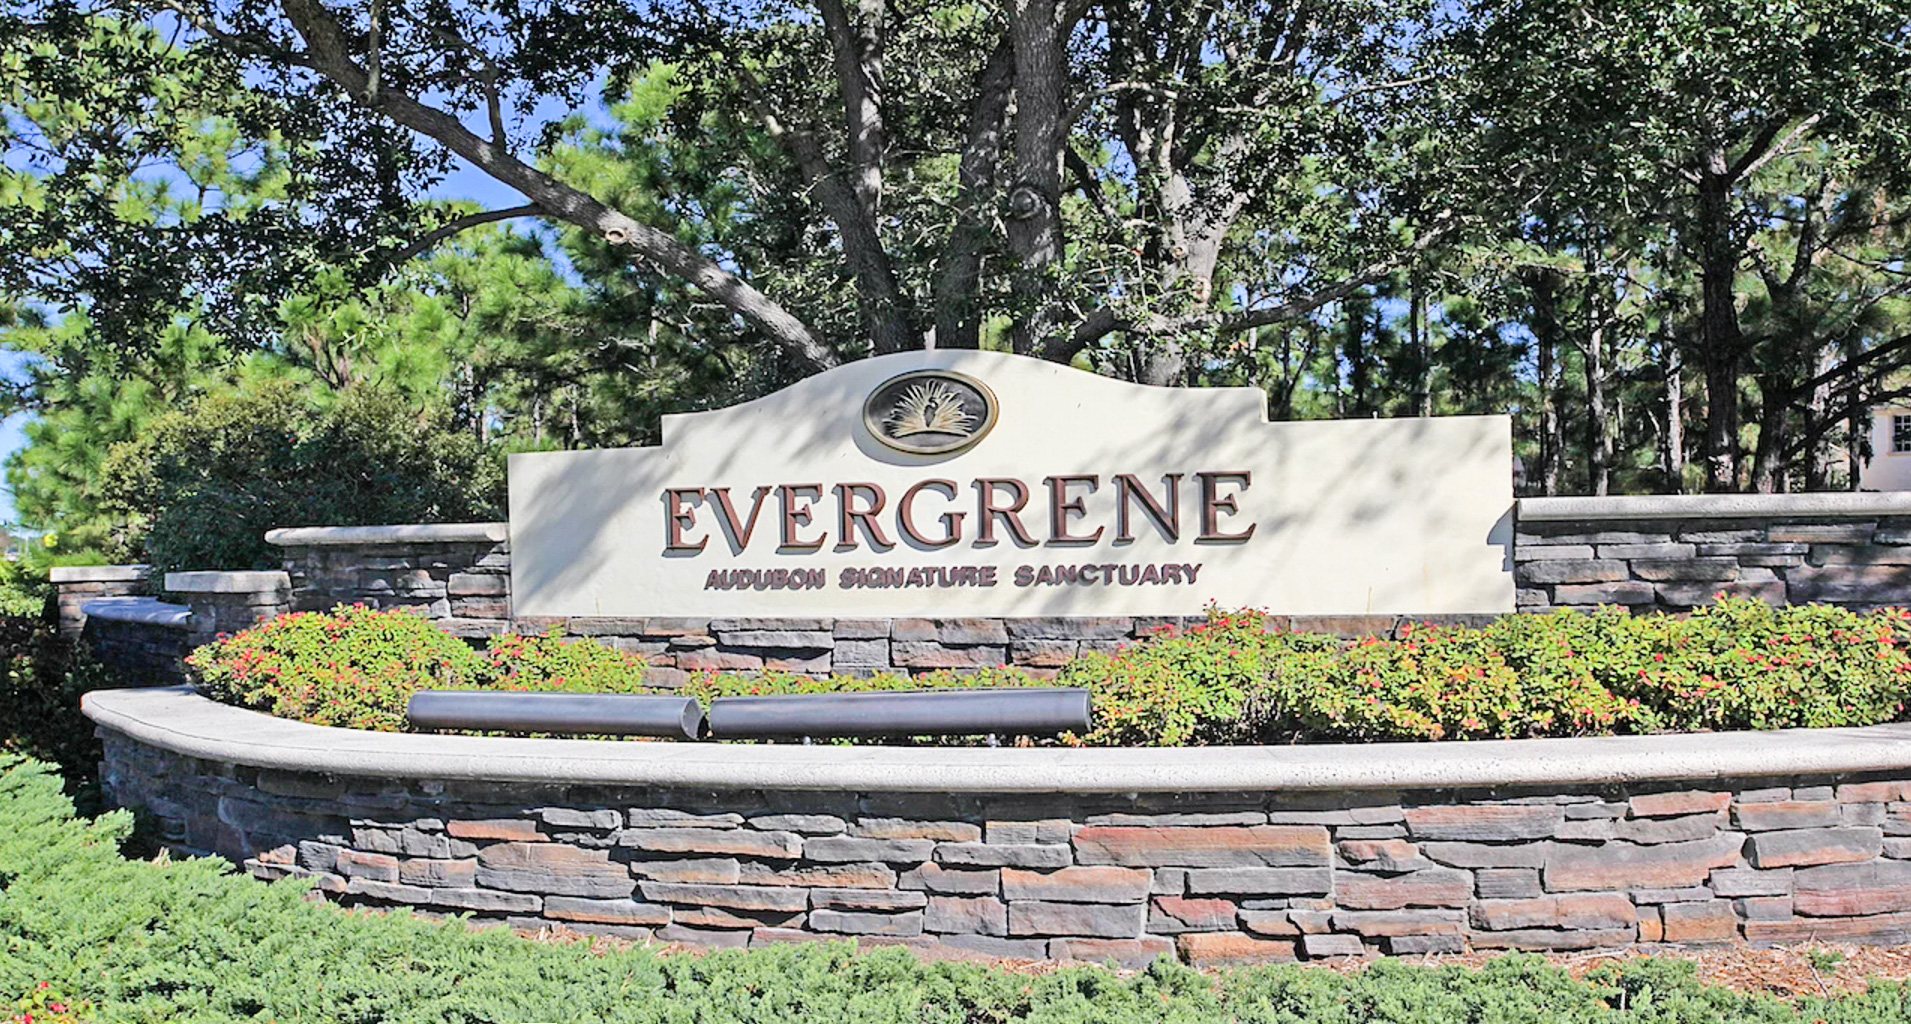 Evergrene Homes for Sale in Palm Beach Gardens Florida 33410 community image